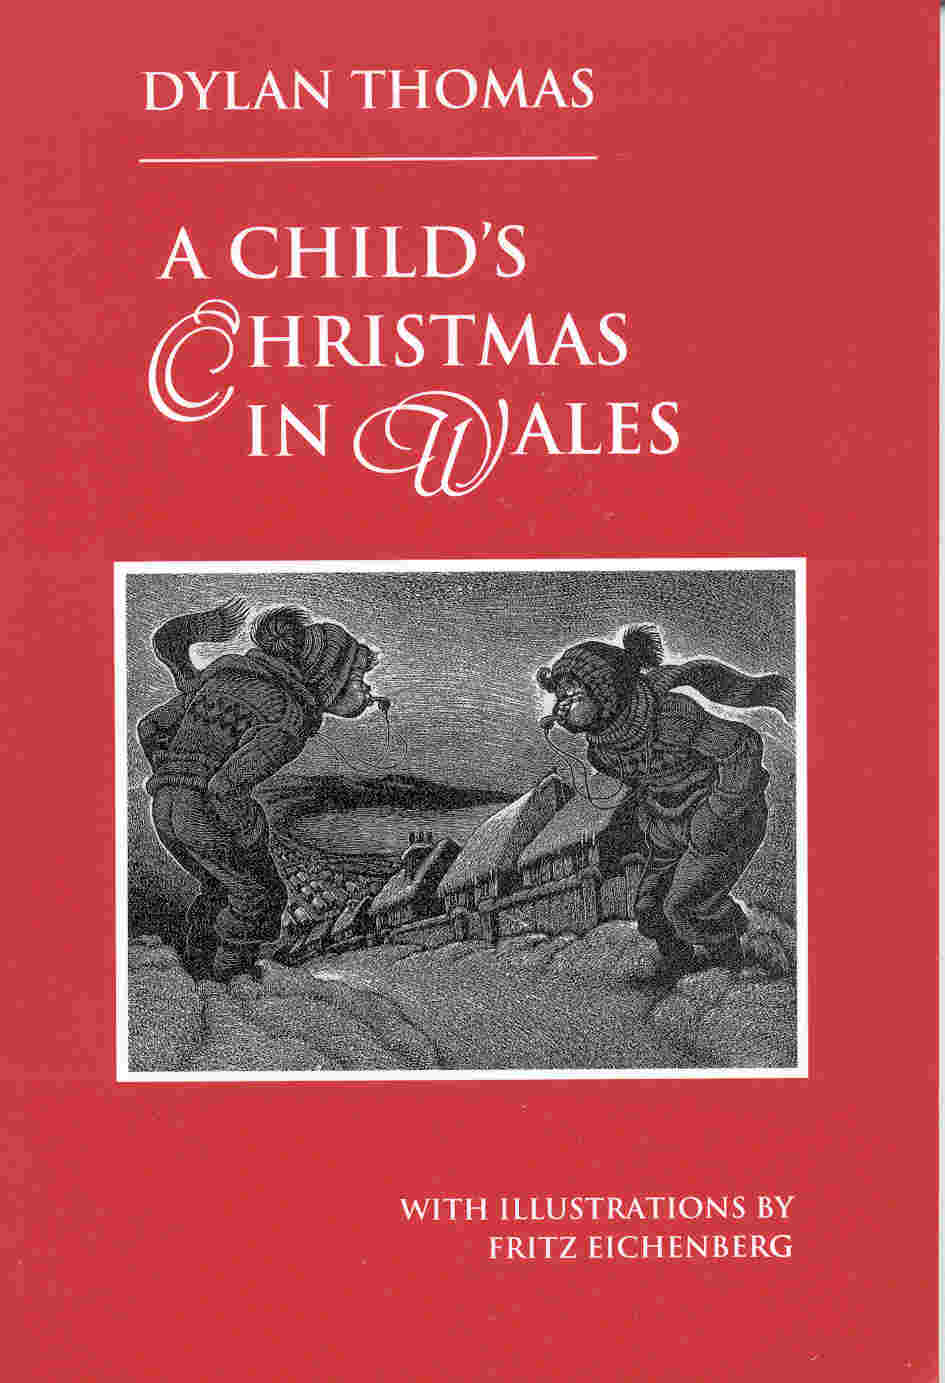 A Childs Christmas In Wales.7 Great Holiday Reads The Bluegrass Situation